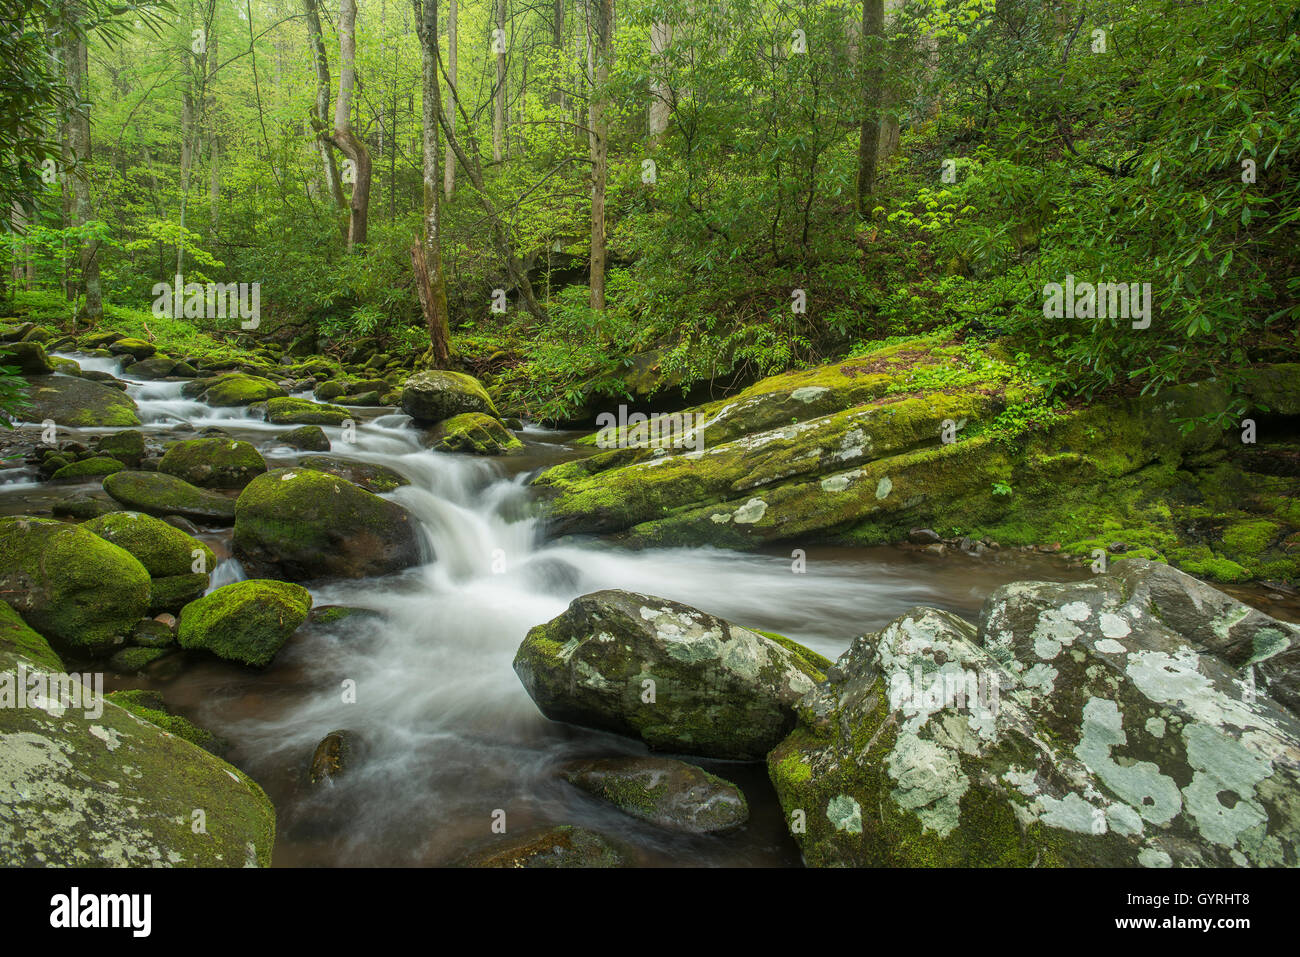 Moss-covered rocks and boulders along Roaring Fork River, Summer, Great Smoky Mountain National Park, Tennessee, - Stock Image